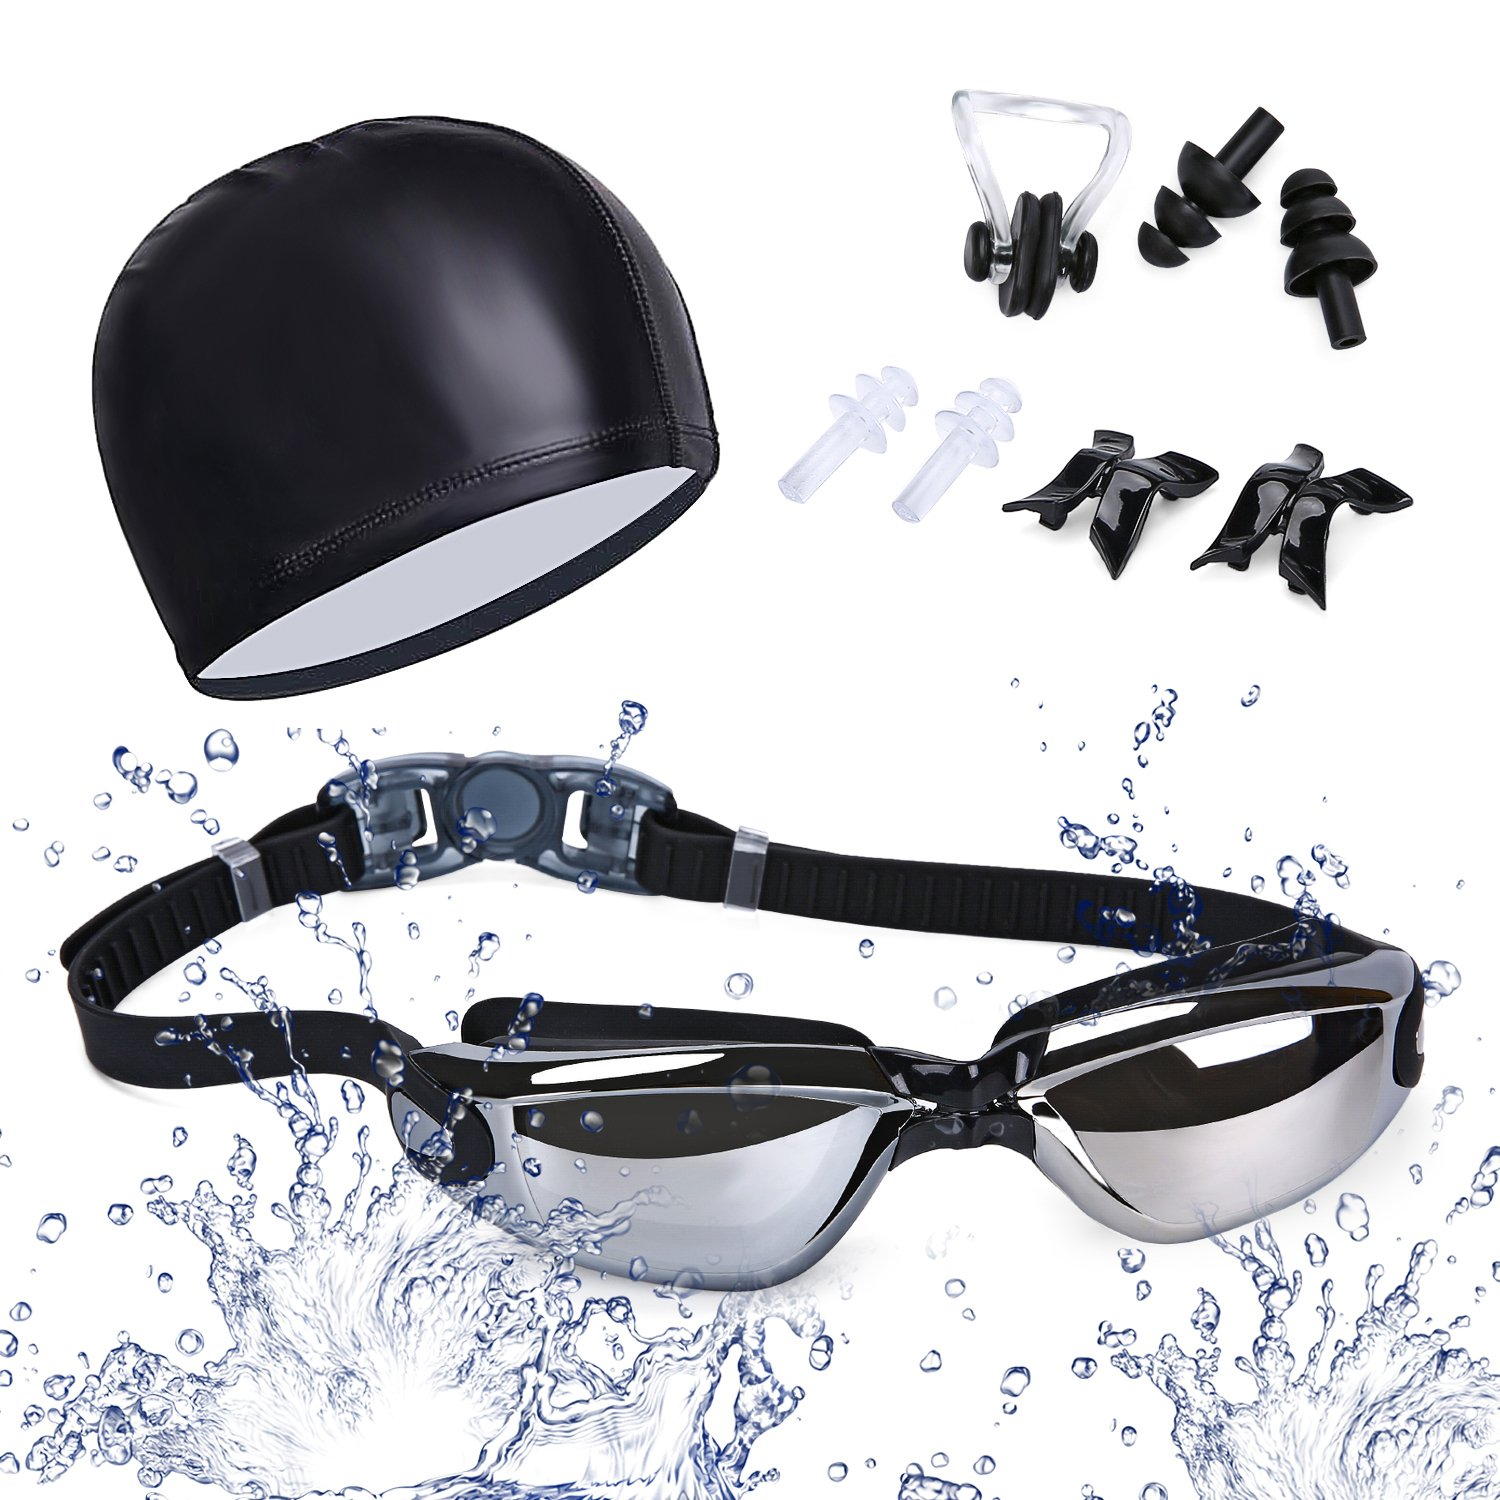 Laufen Anti-fog swimming goggles, 100% UV-protection, mirror-coated lenses, anti- fog diving goggles with adjustable silicone strap with quick-release, plus free ear plugs, nose clip and swimming cap